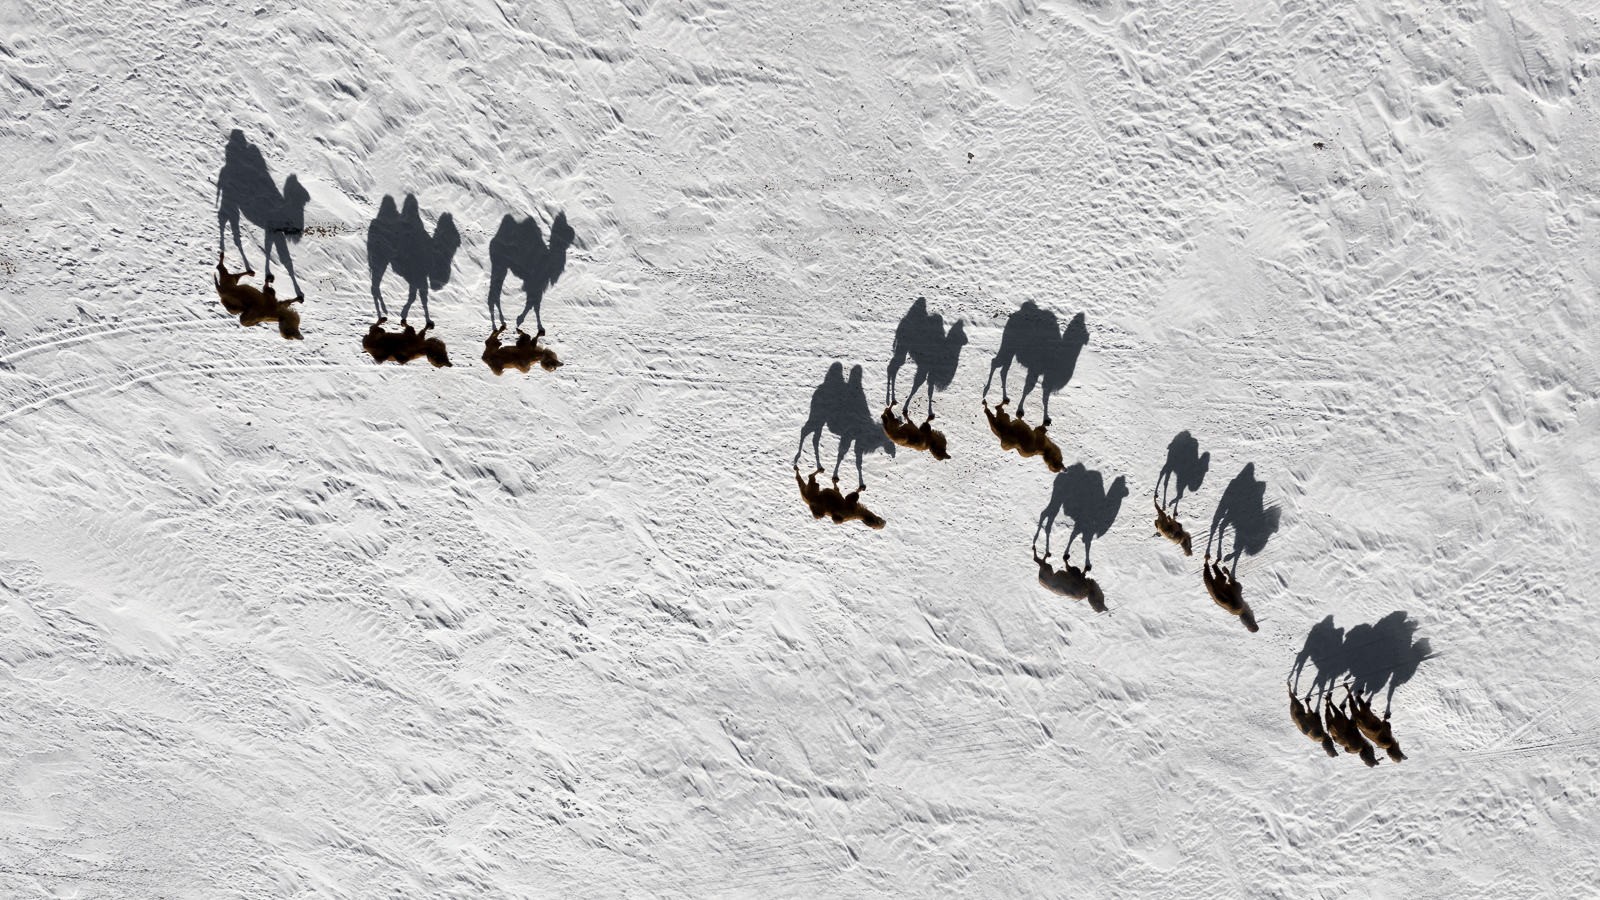 Drone Camels